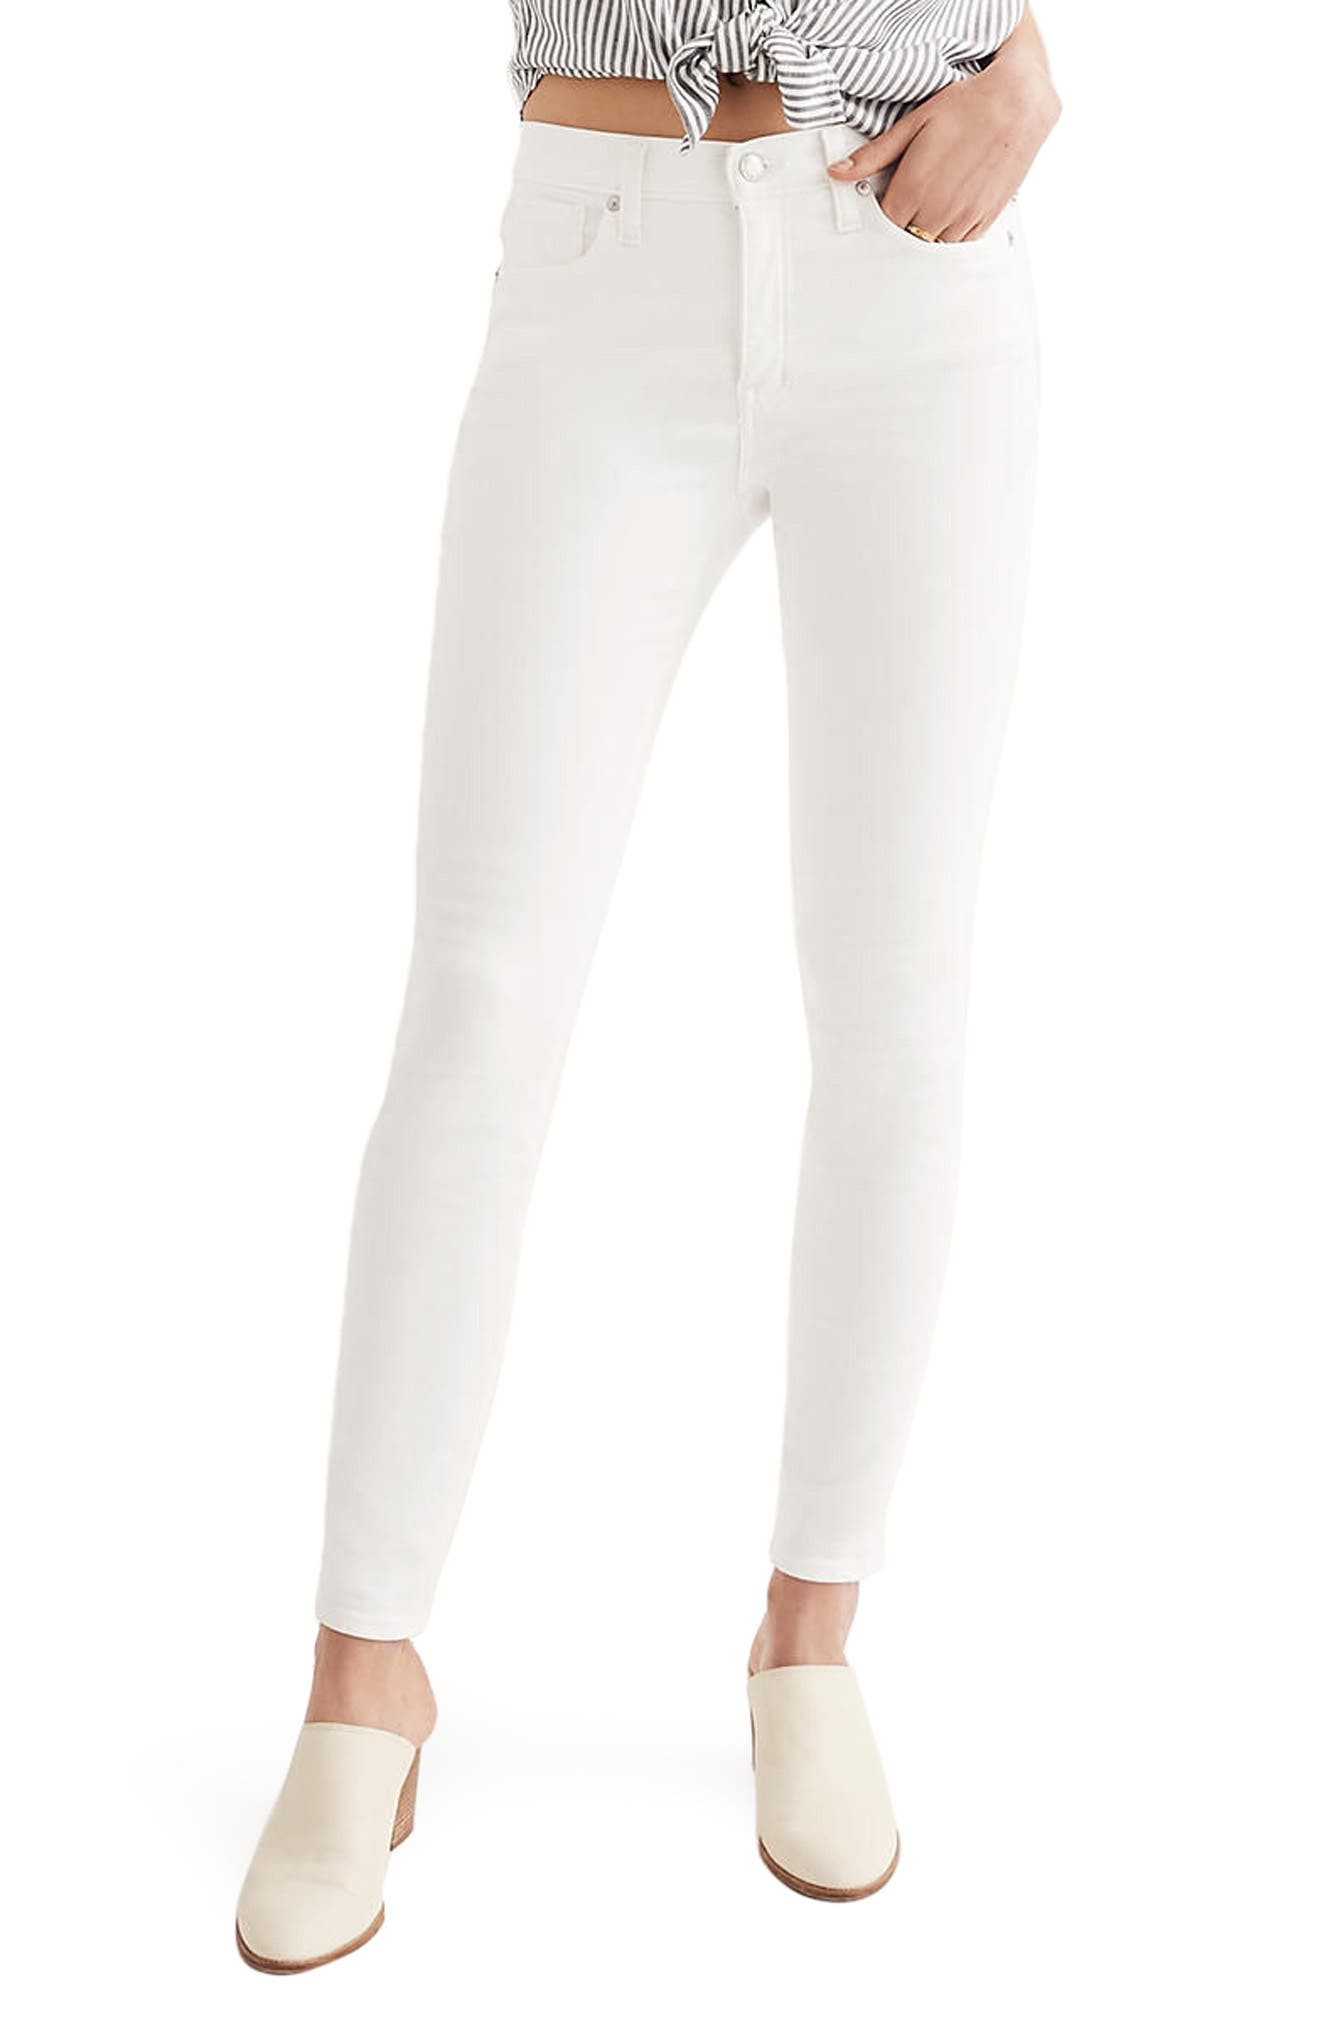 MADEWELL, 9-Inch High Waist Skinny Jeans, Main thumbnail 1, color, PURE WHITE